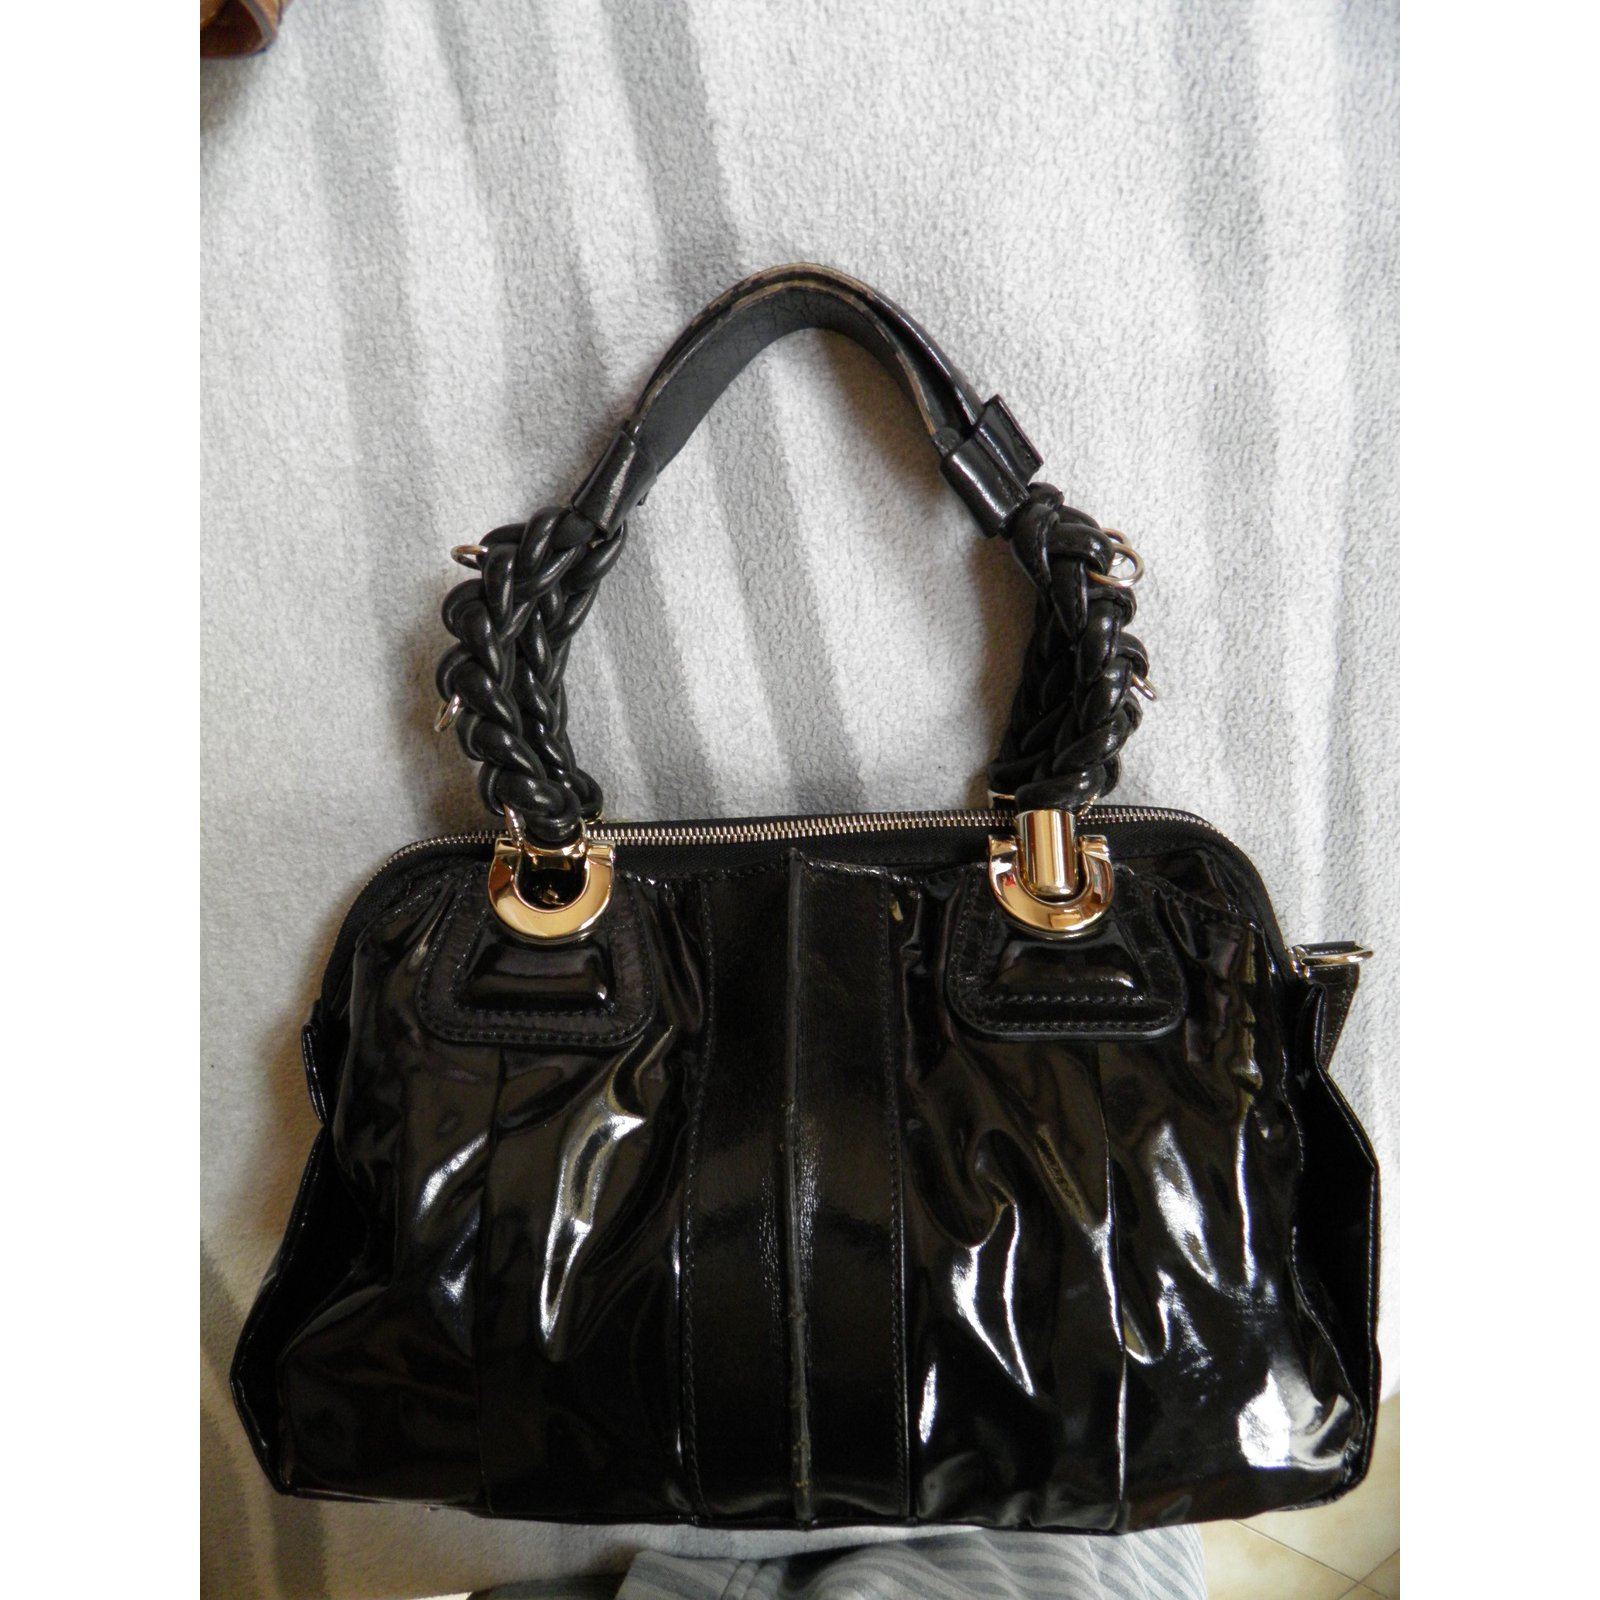 Chloé heloise Handbags Patent leather Black ref.62811 - Joli Closet 5ad58fde2717a